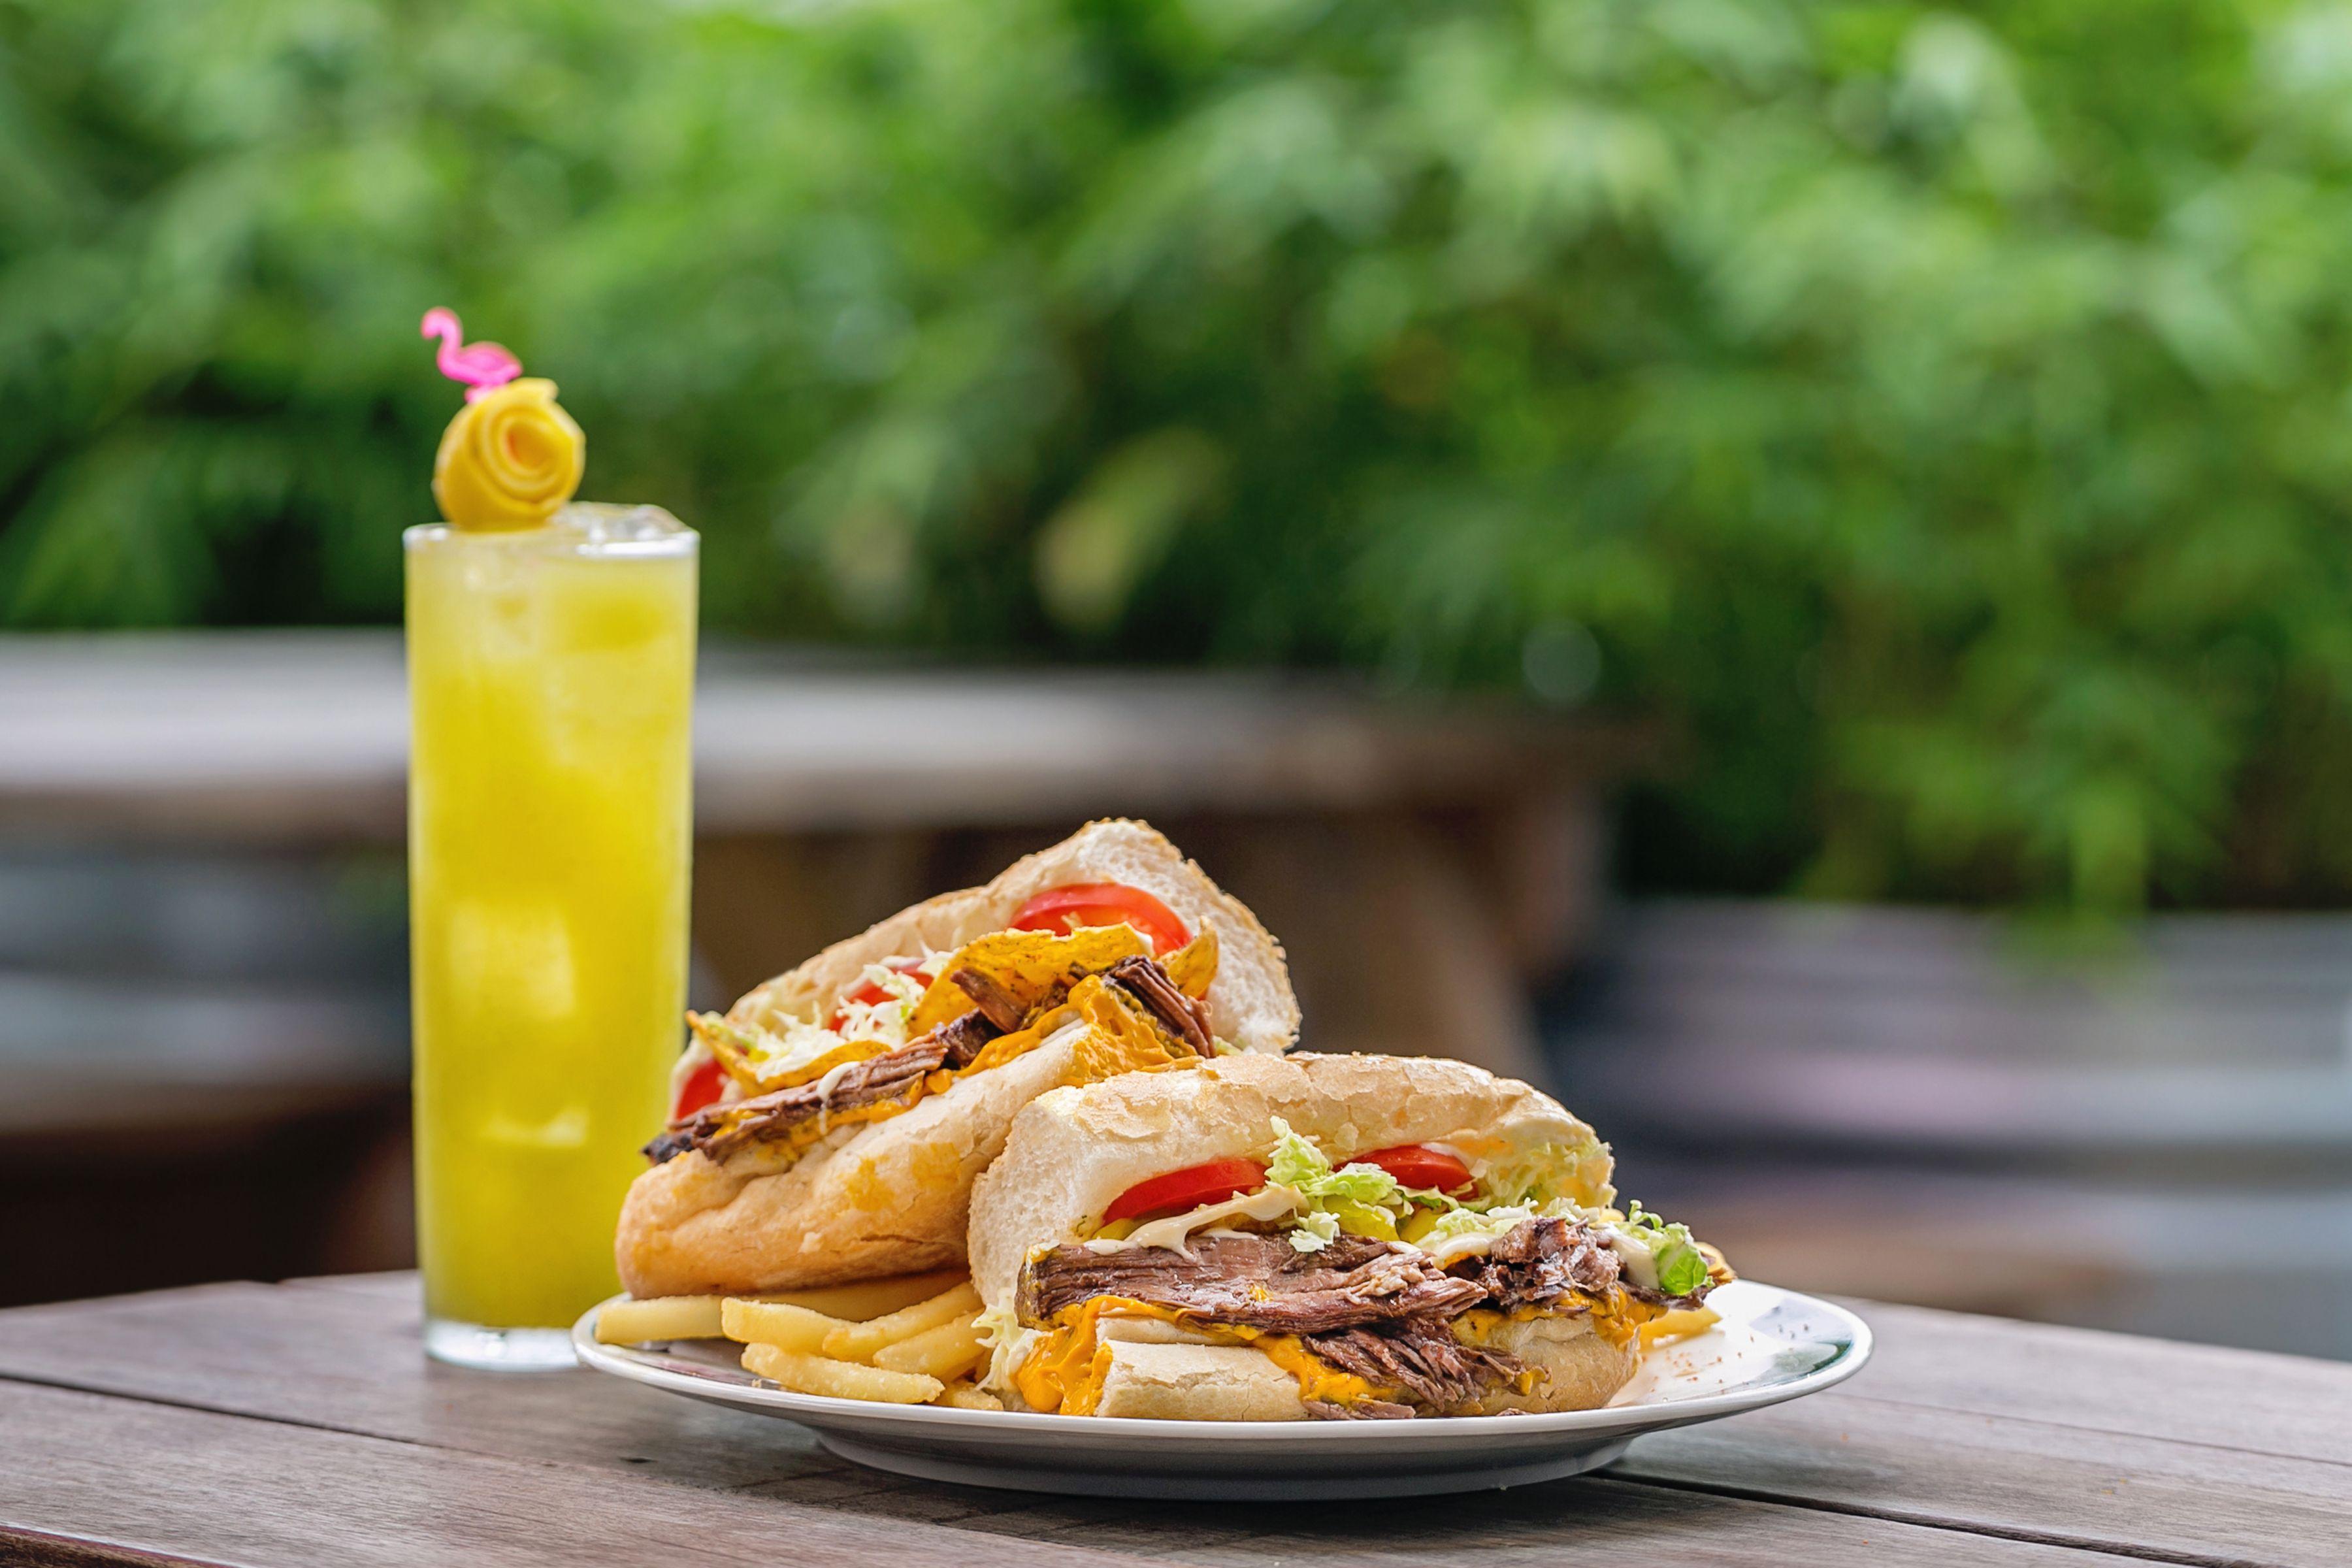 a beefy po'boy sandwich and a yellow cocktail with a lemon twist